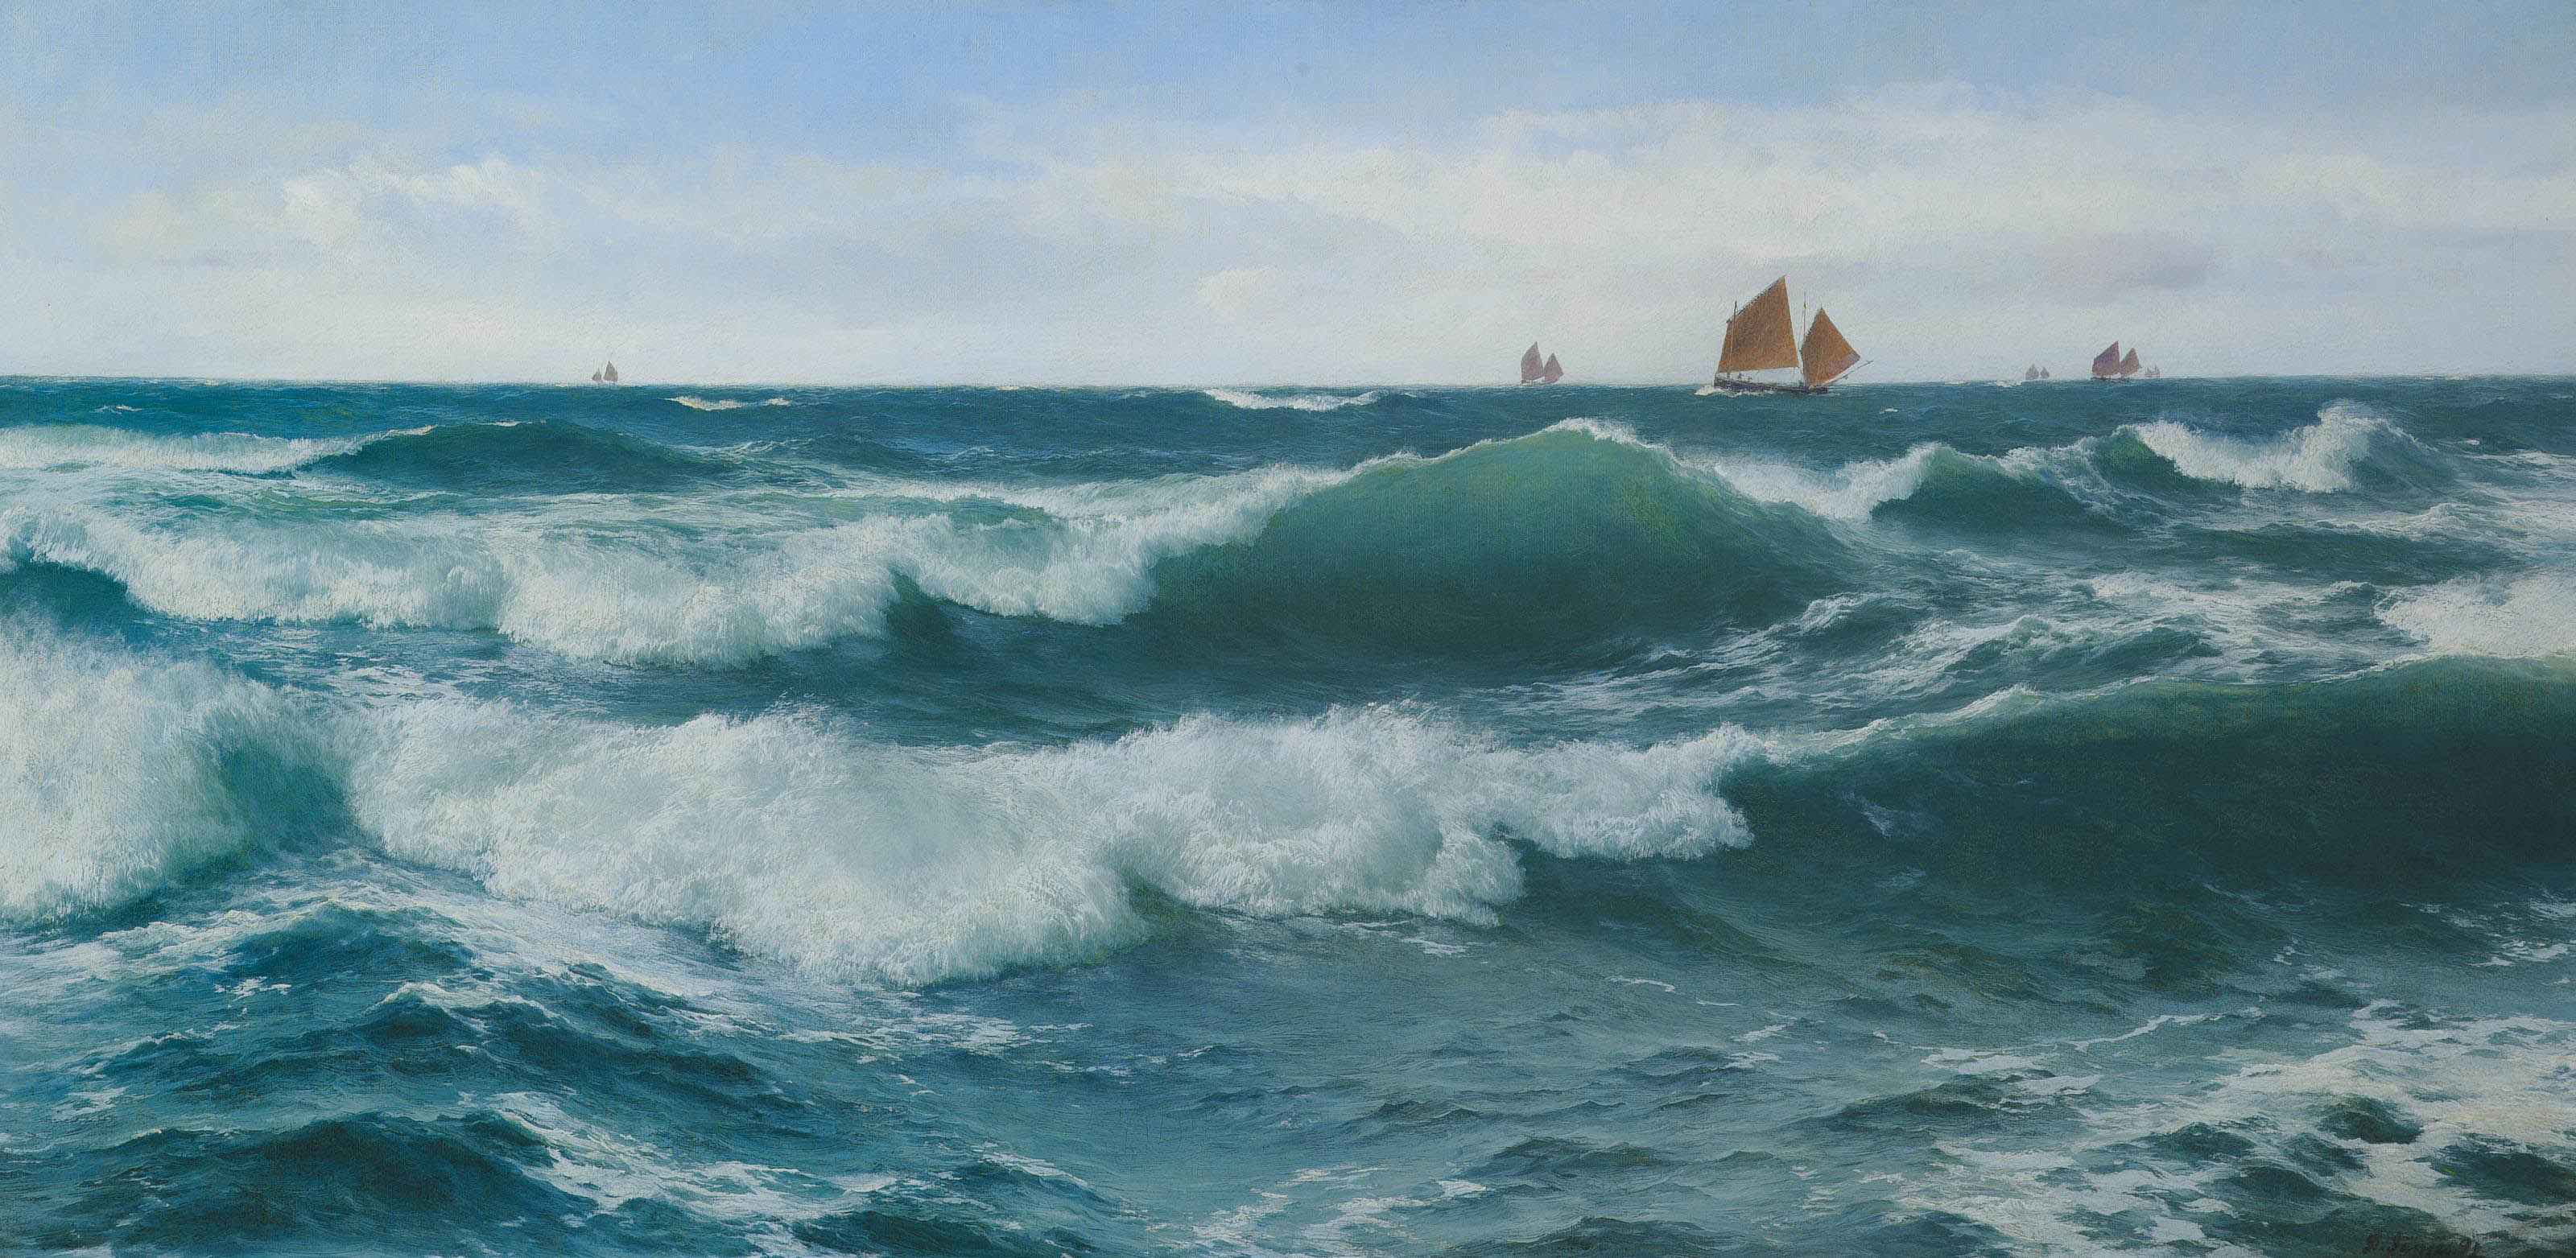 Waves breaking in shallow waters with boats off to the fishing grounds beyond